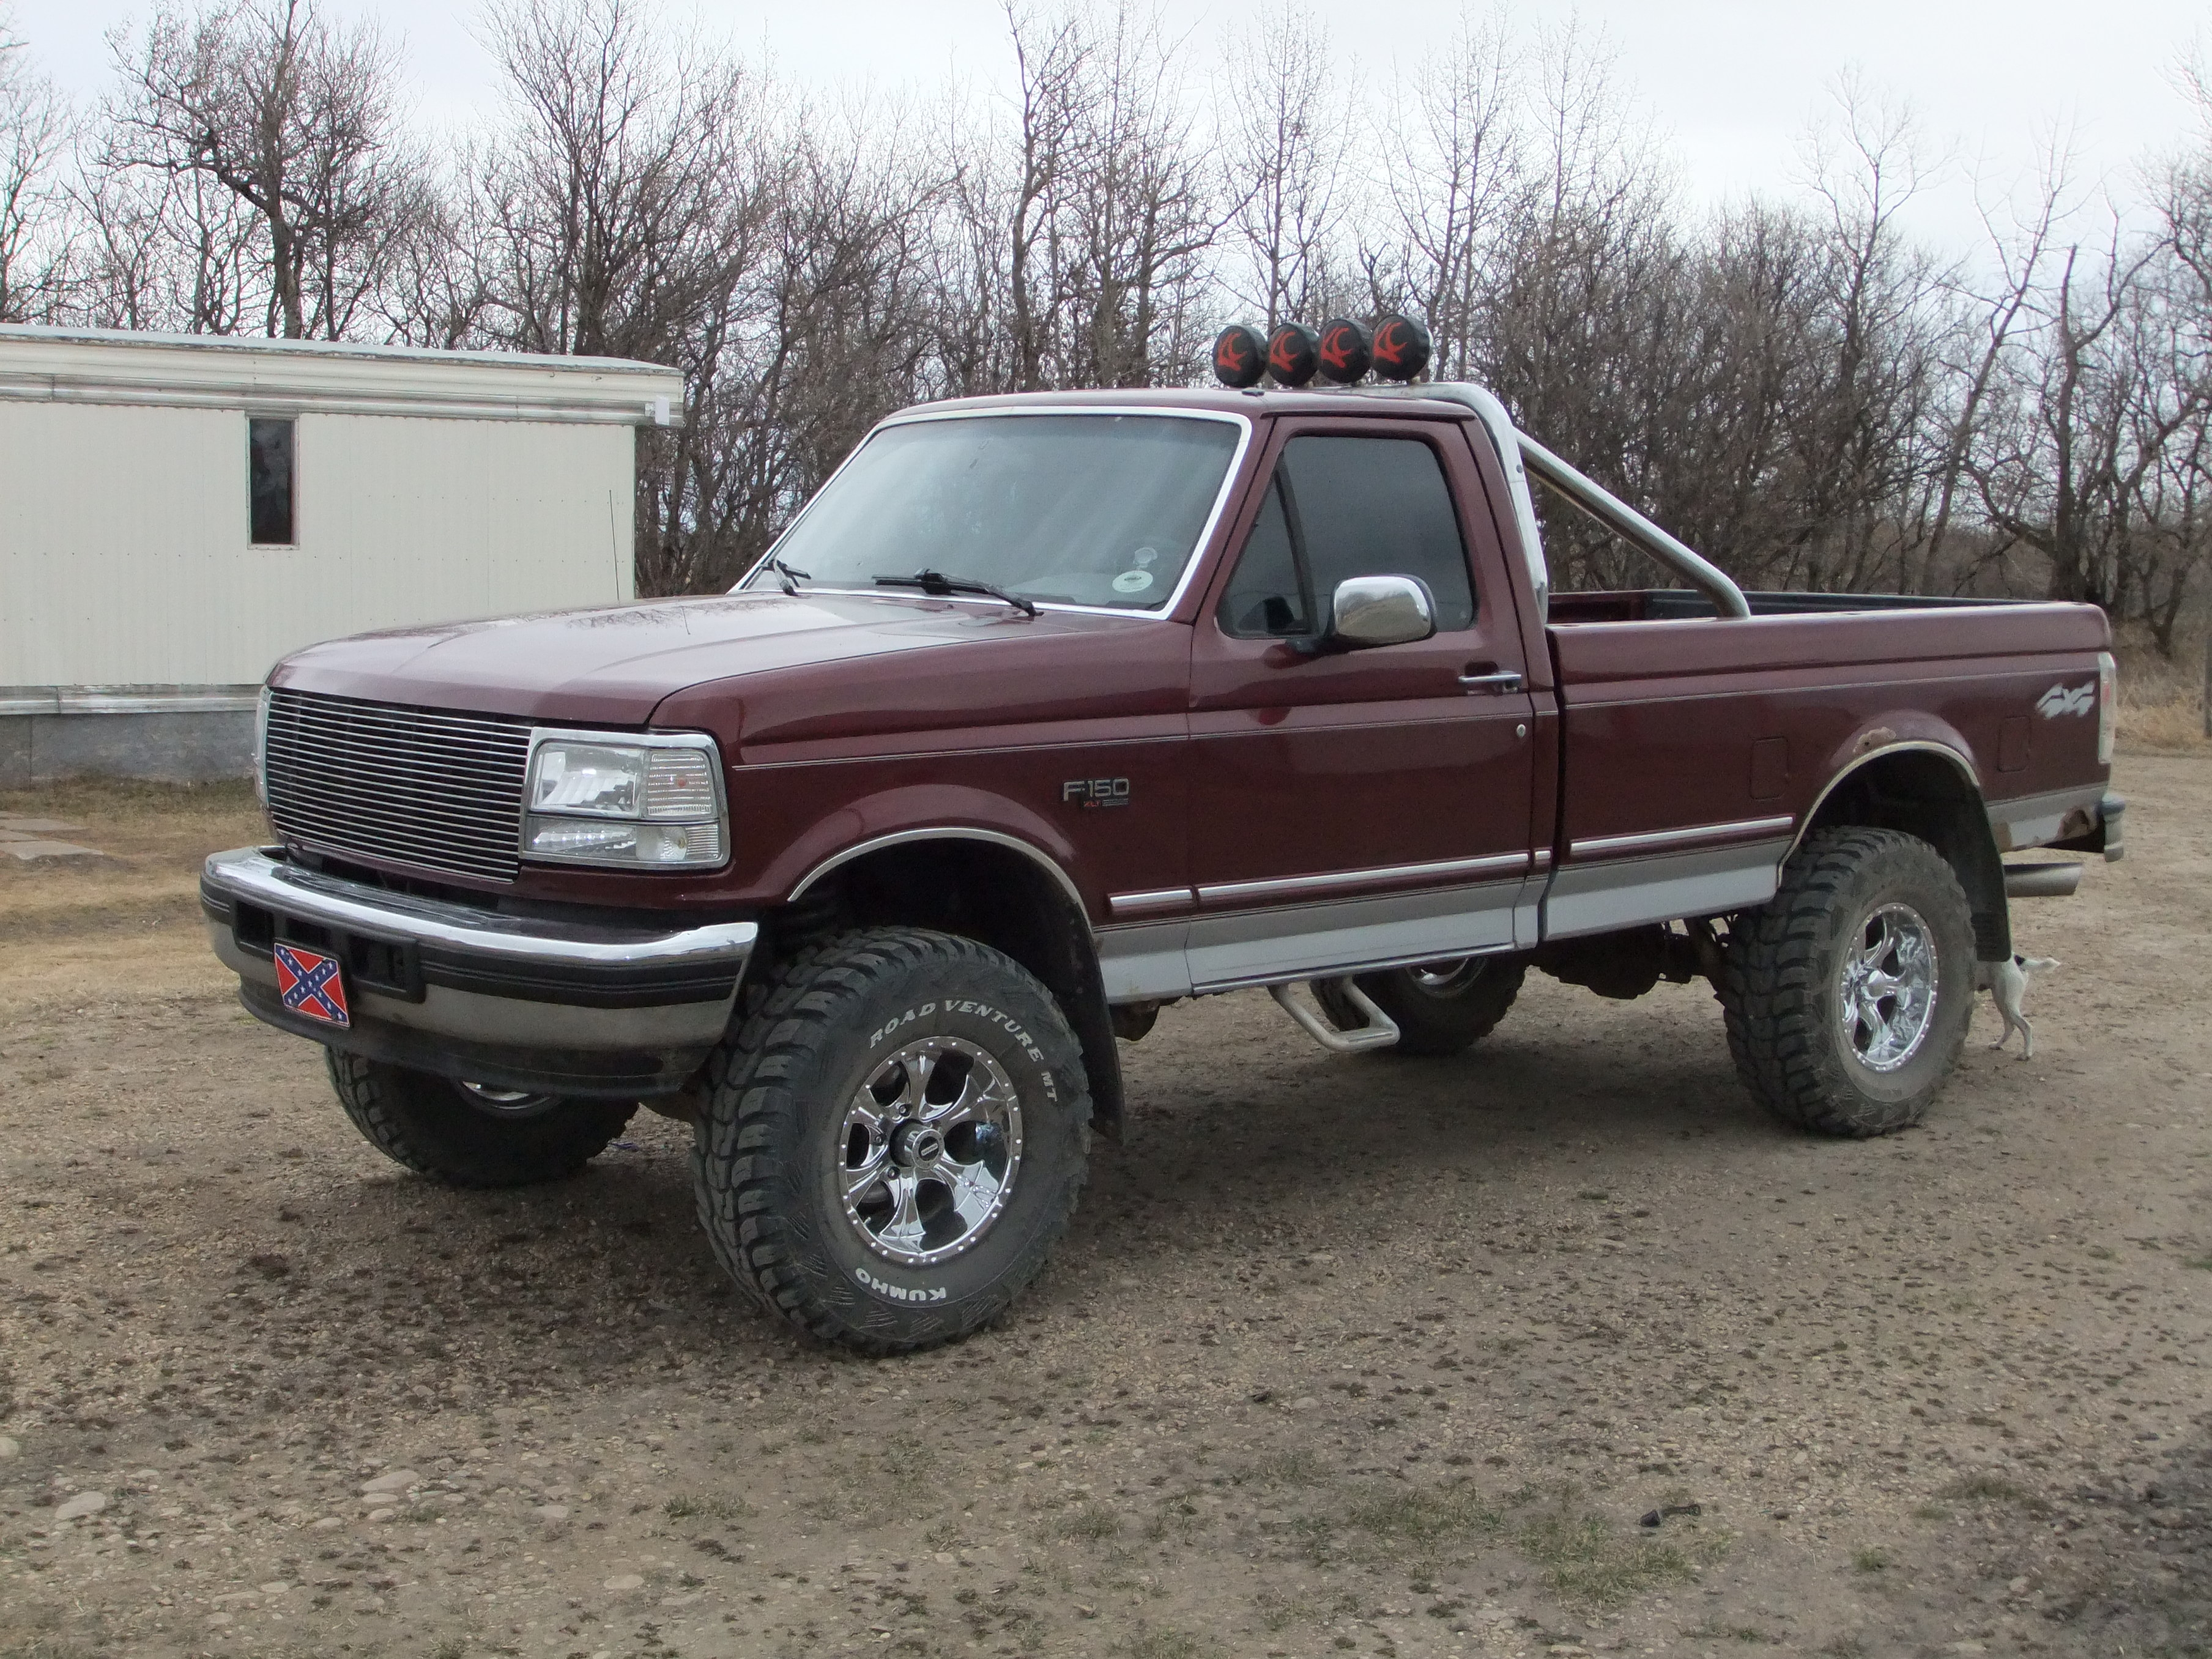 hicktown 96 1996 ford f150 regular cab specs photos modification info at cardomain. Black Bedroom Furniture Sets. Home Design Ideas